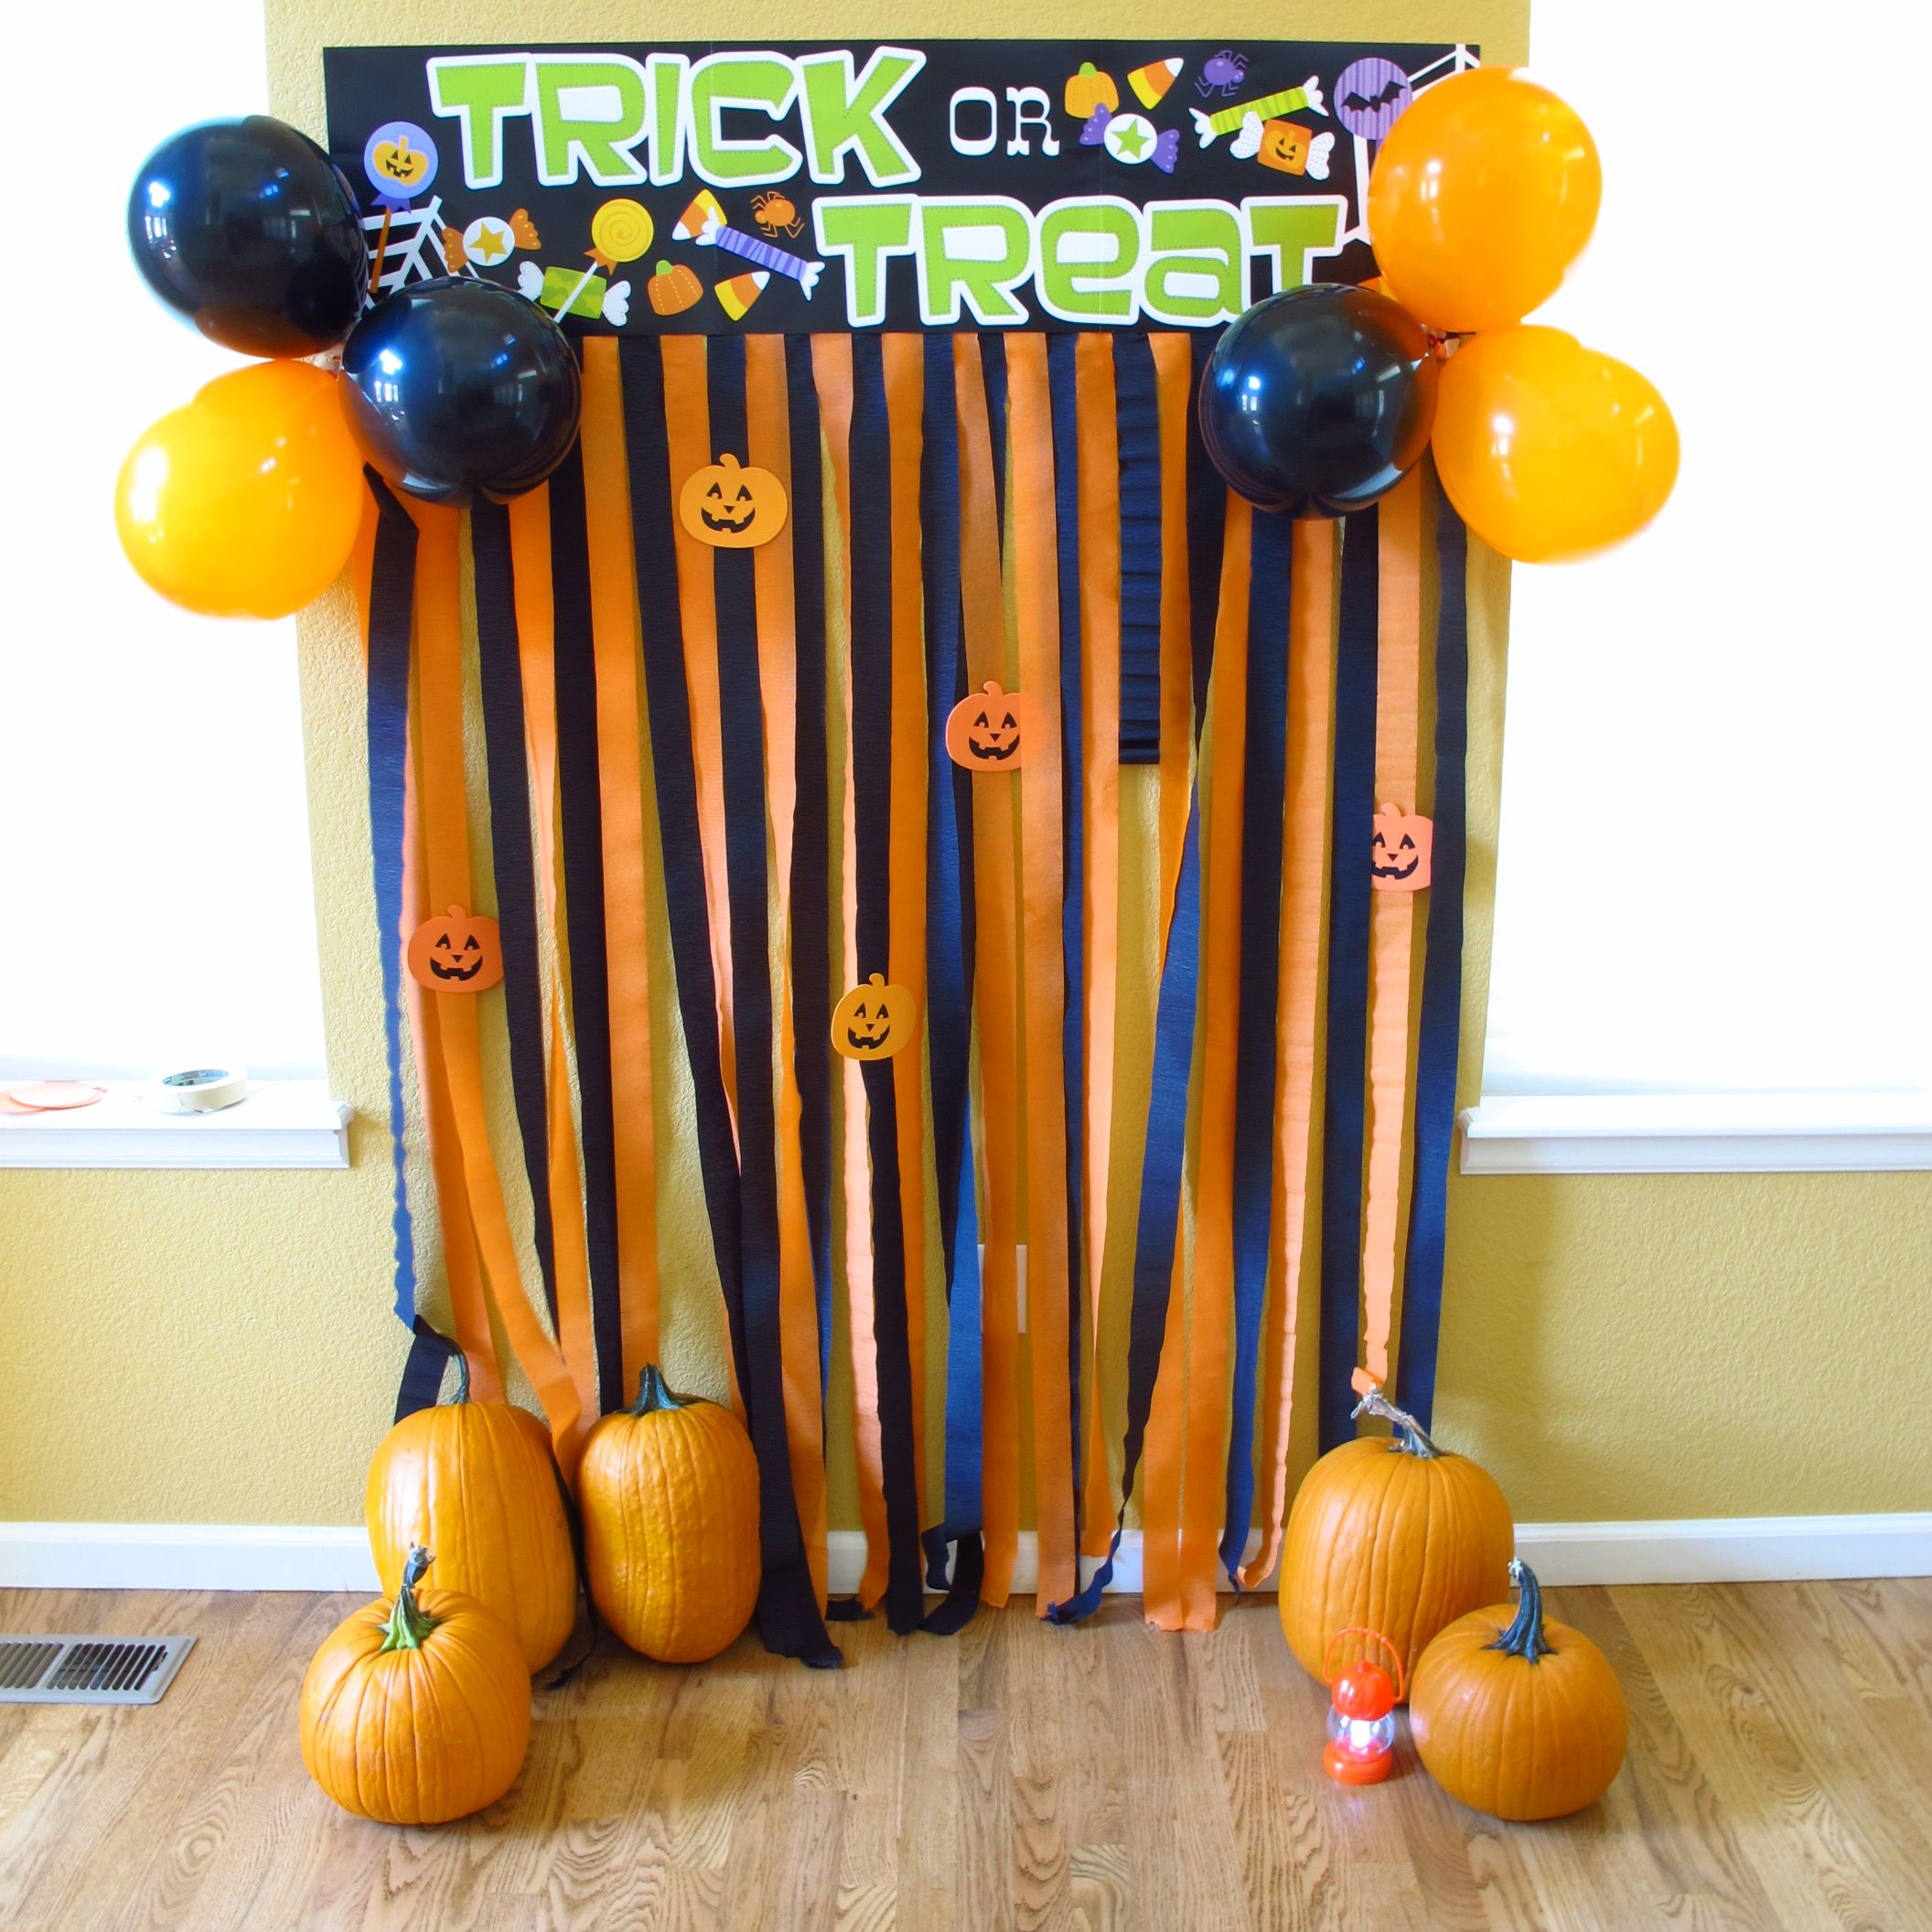 Fun party entrance